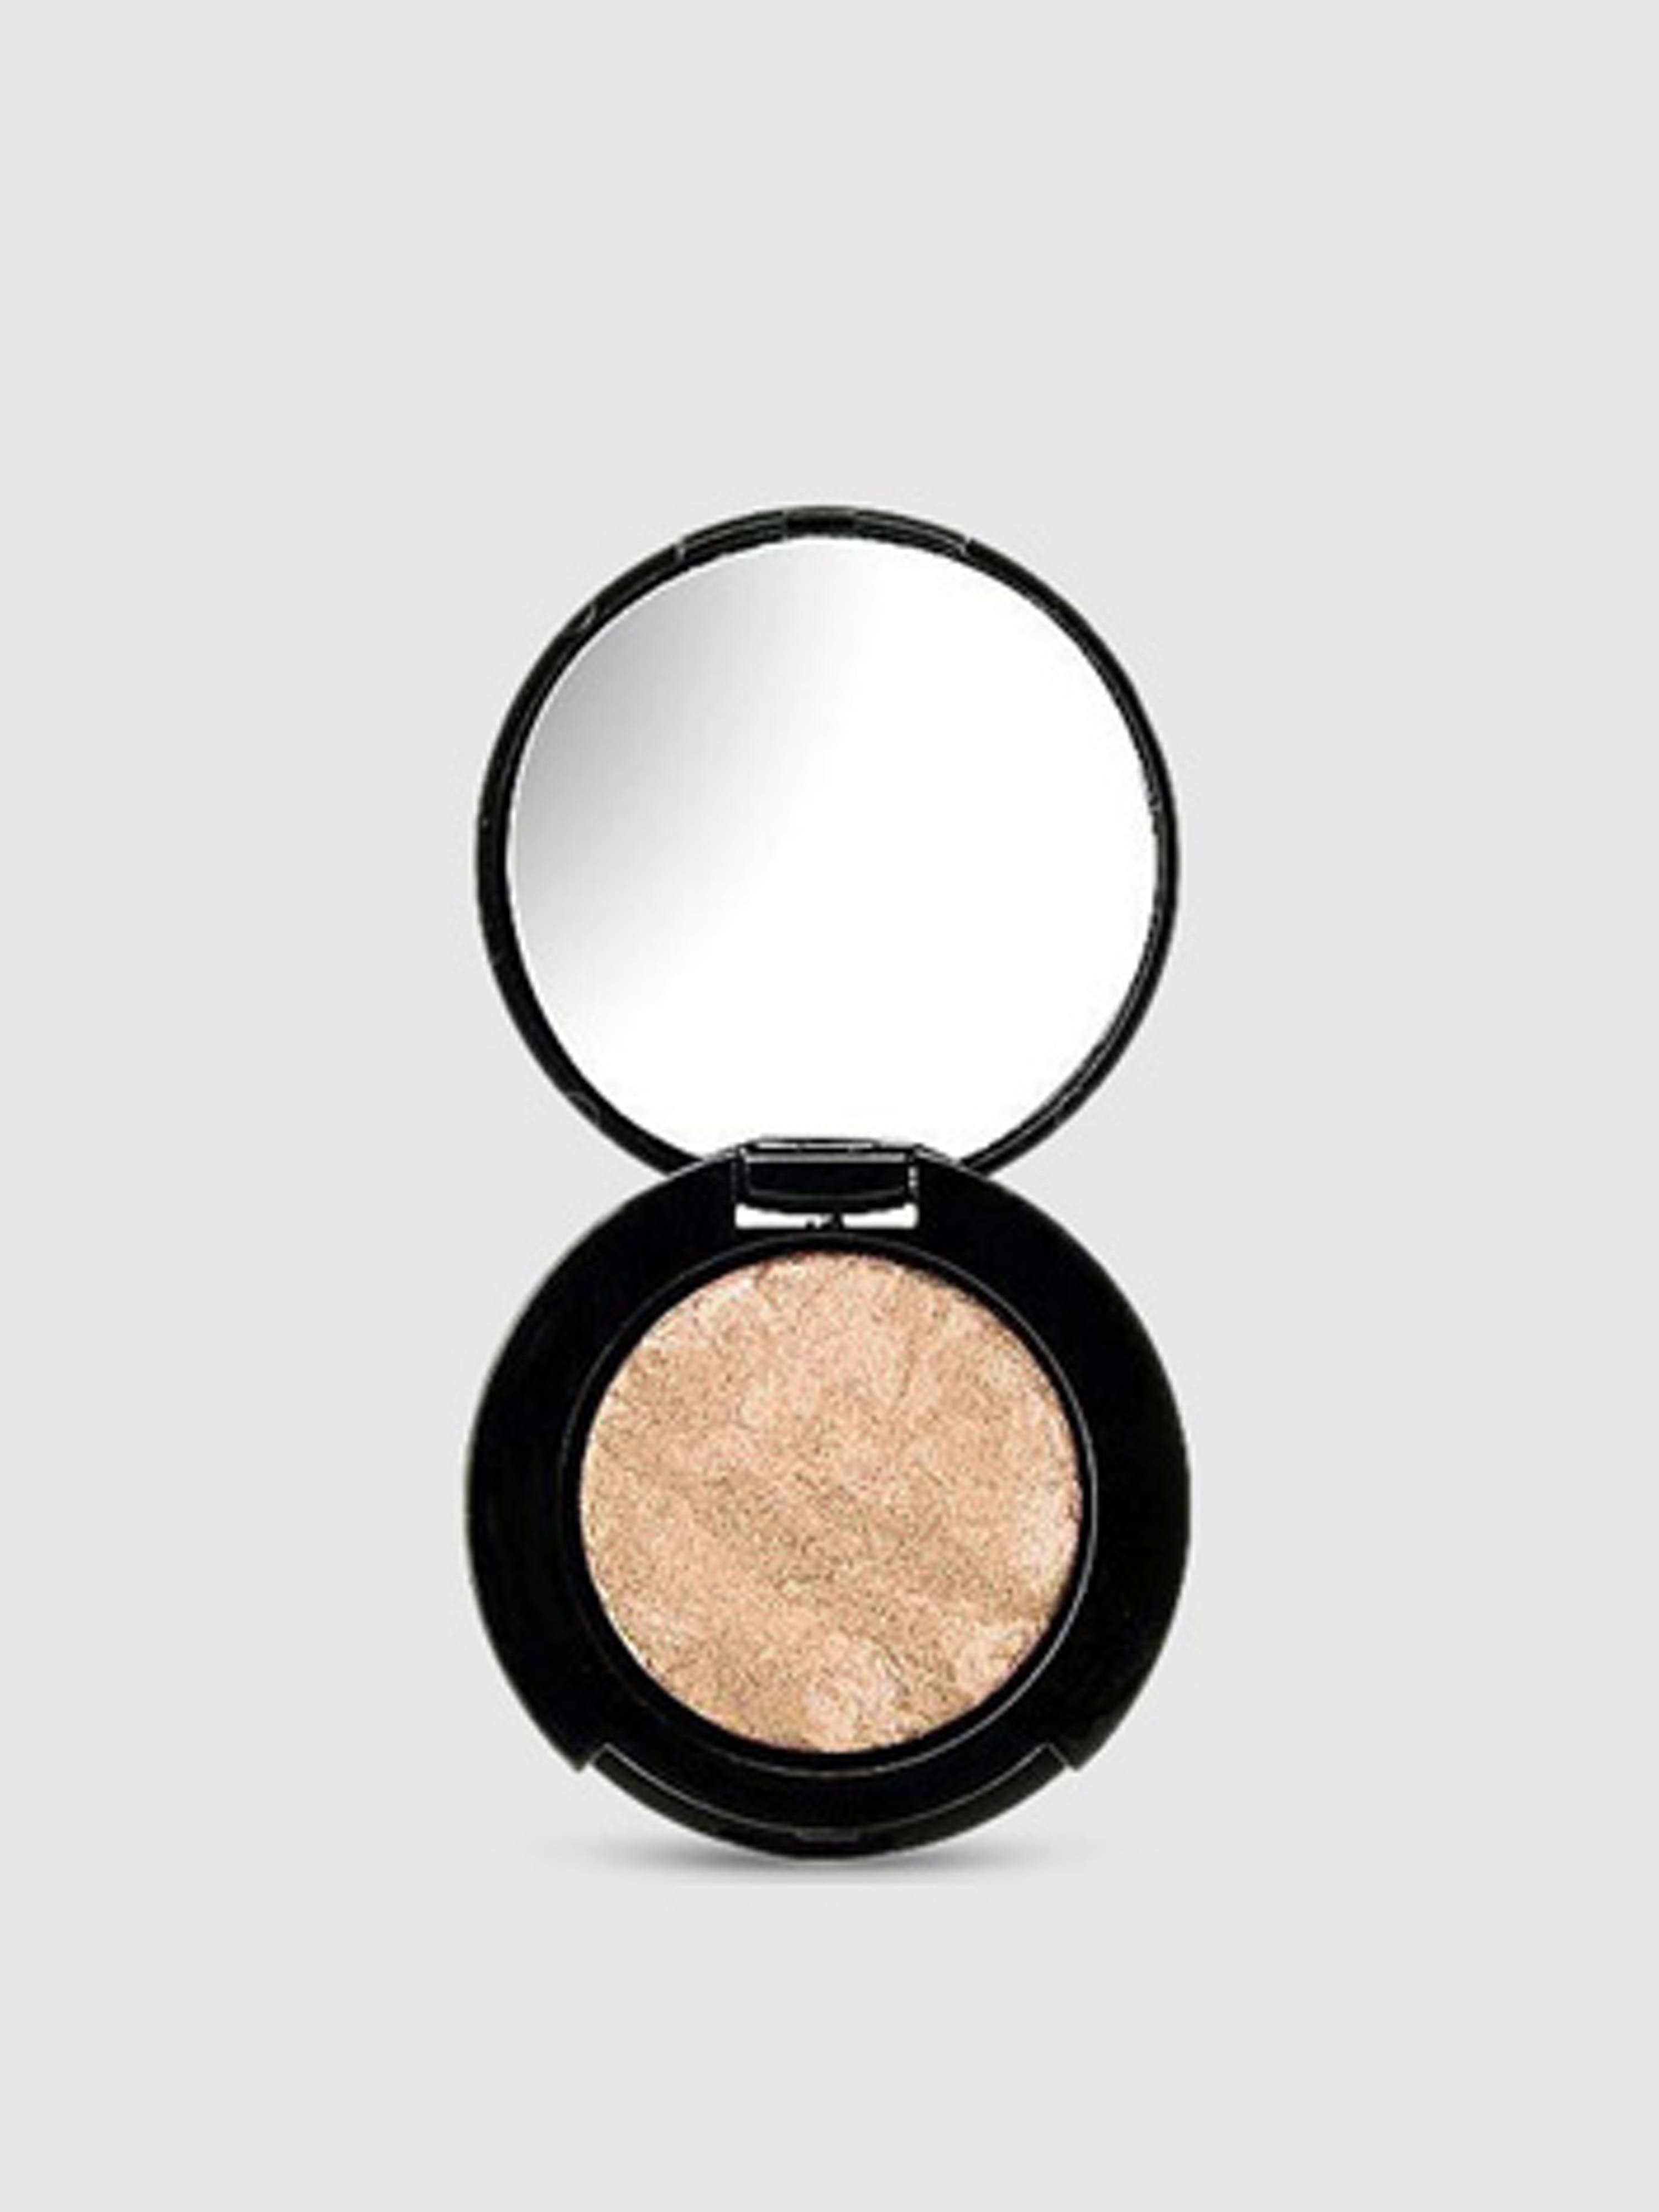 Ready To Wear Beauty Fashionably Baked Dual Intensity Eyeshadows In Gold